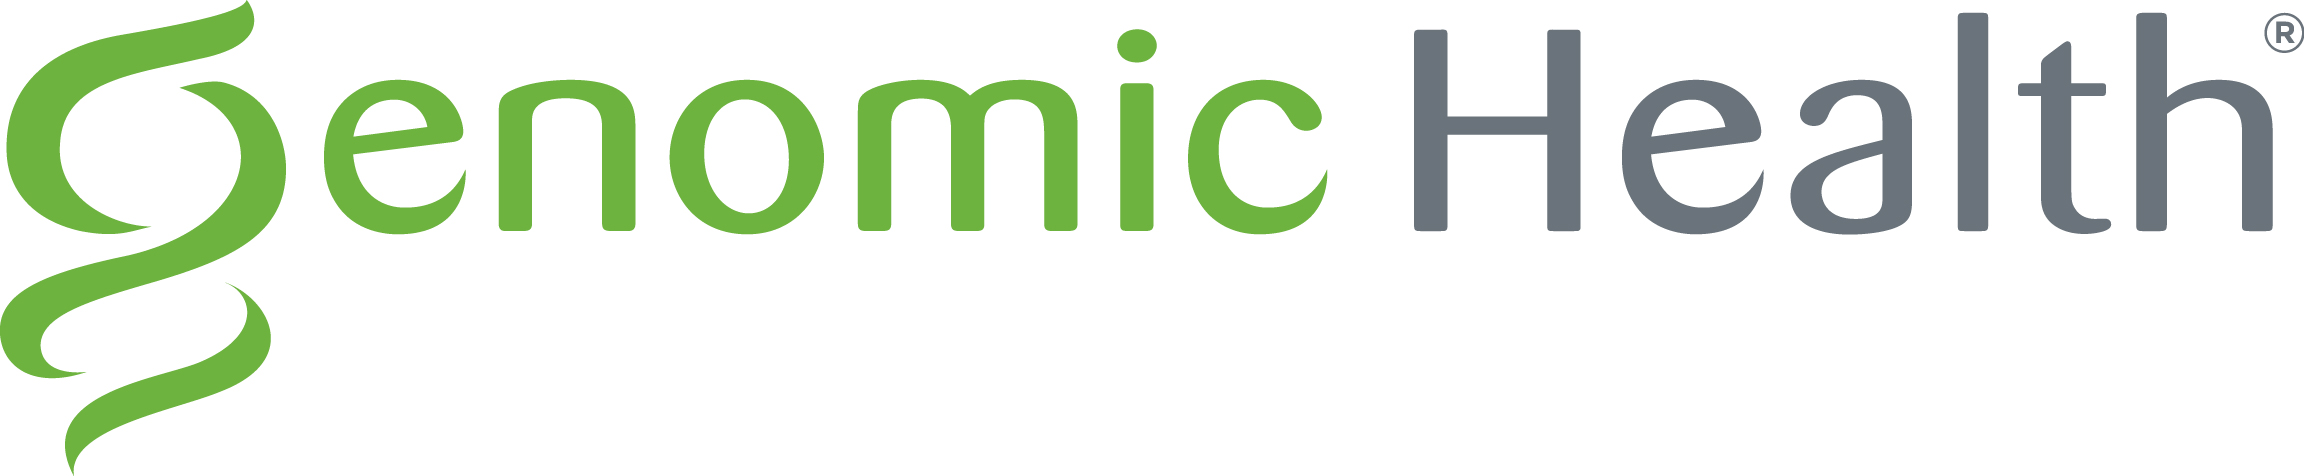 genomic health logo